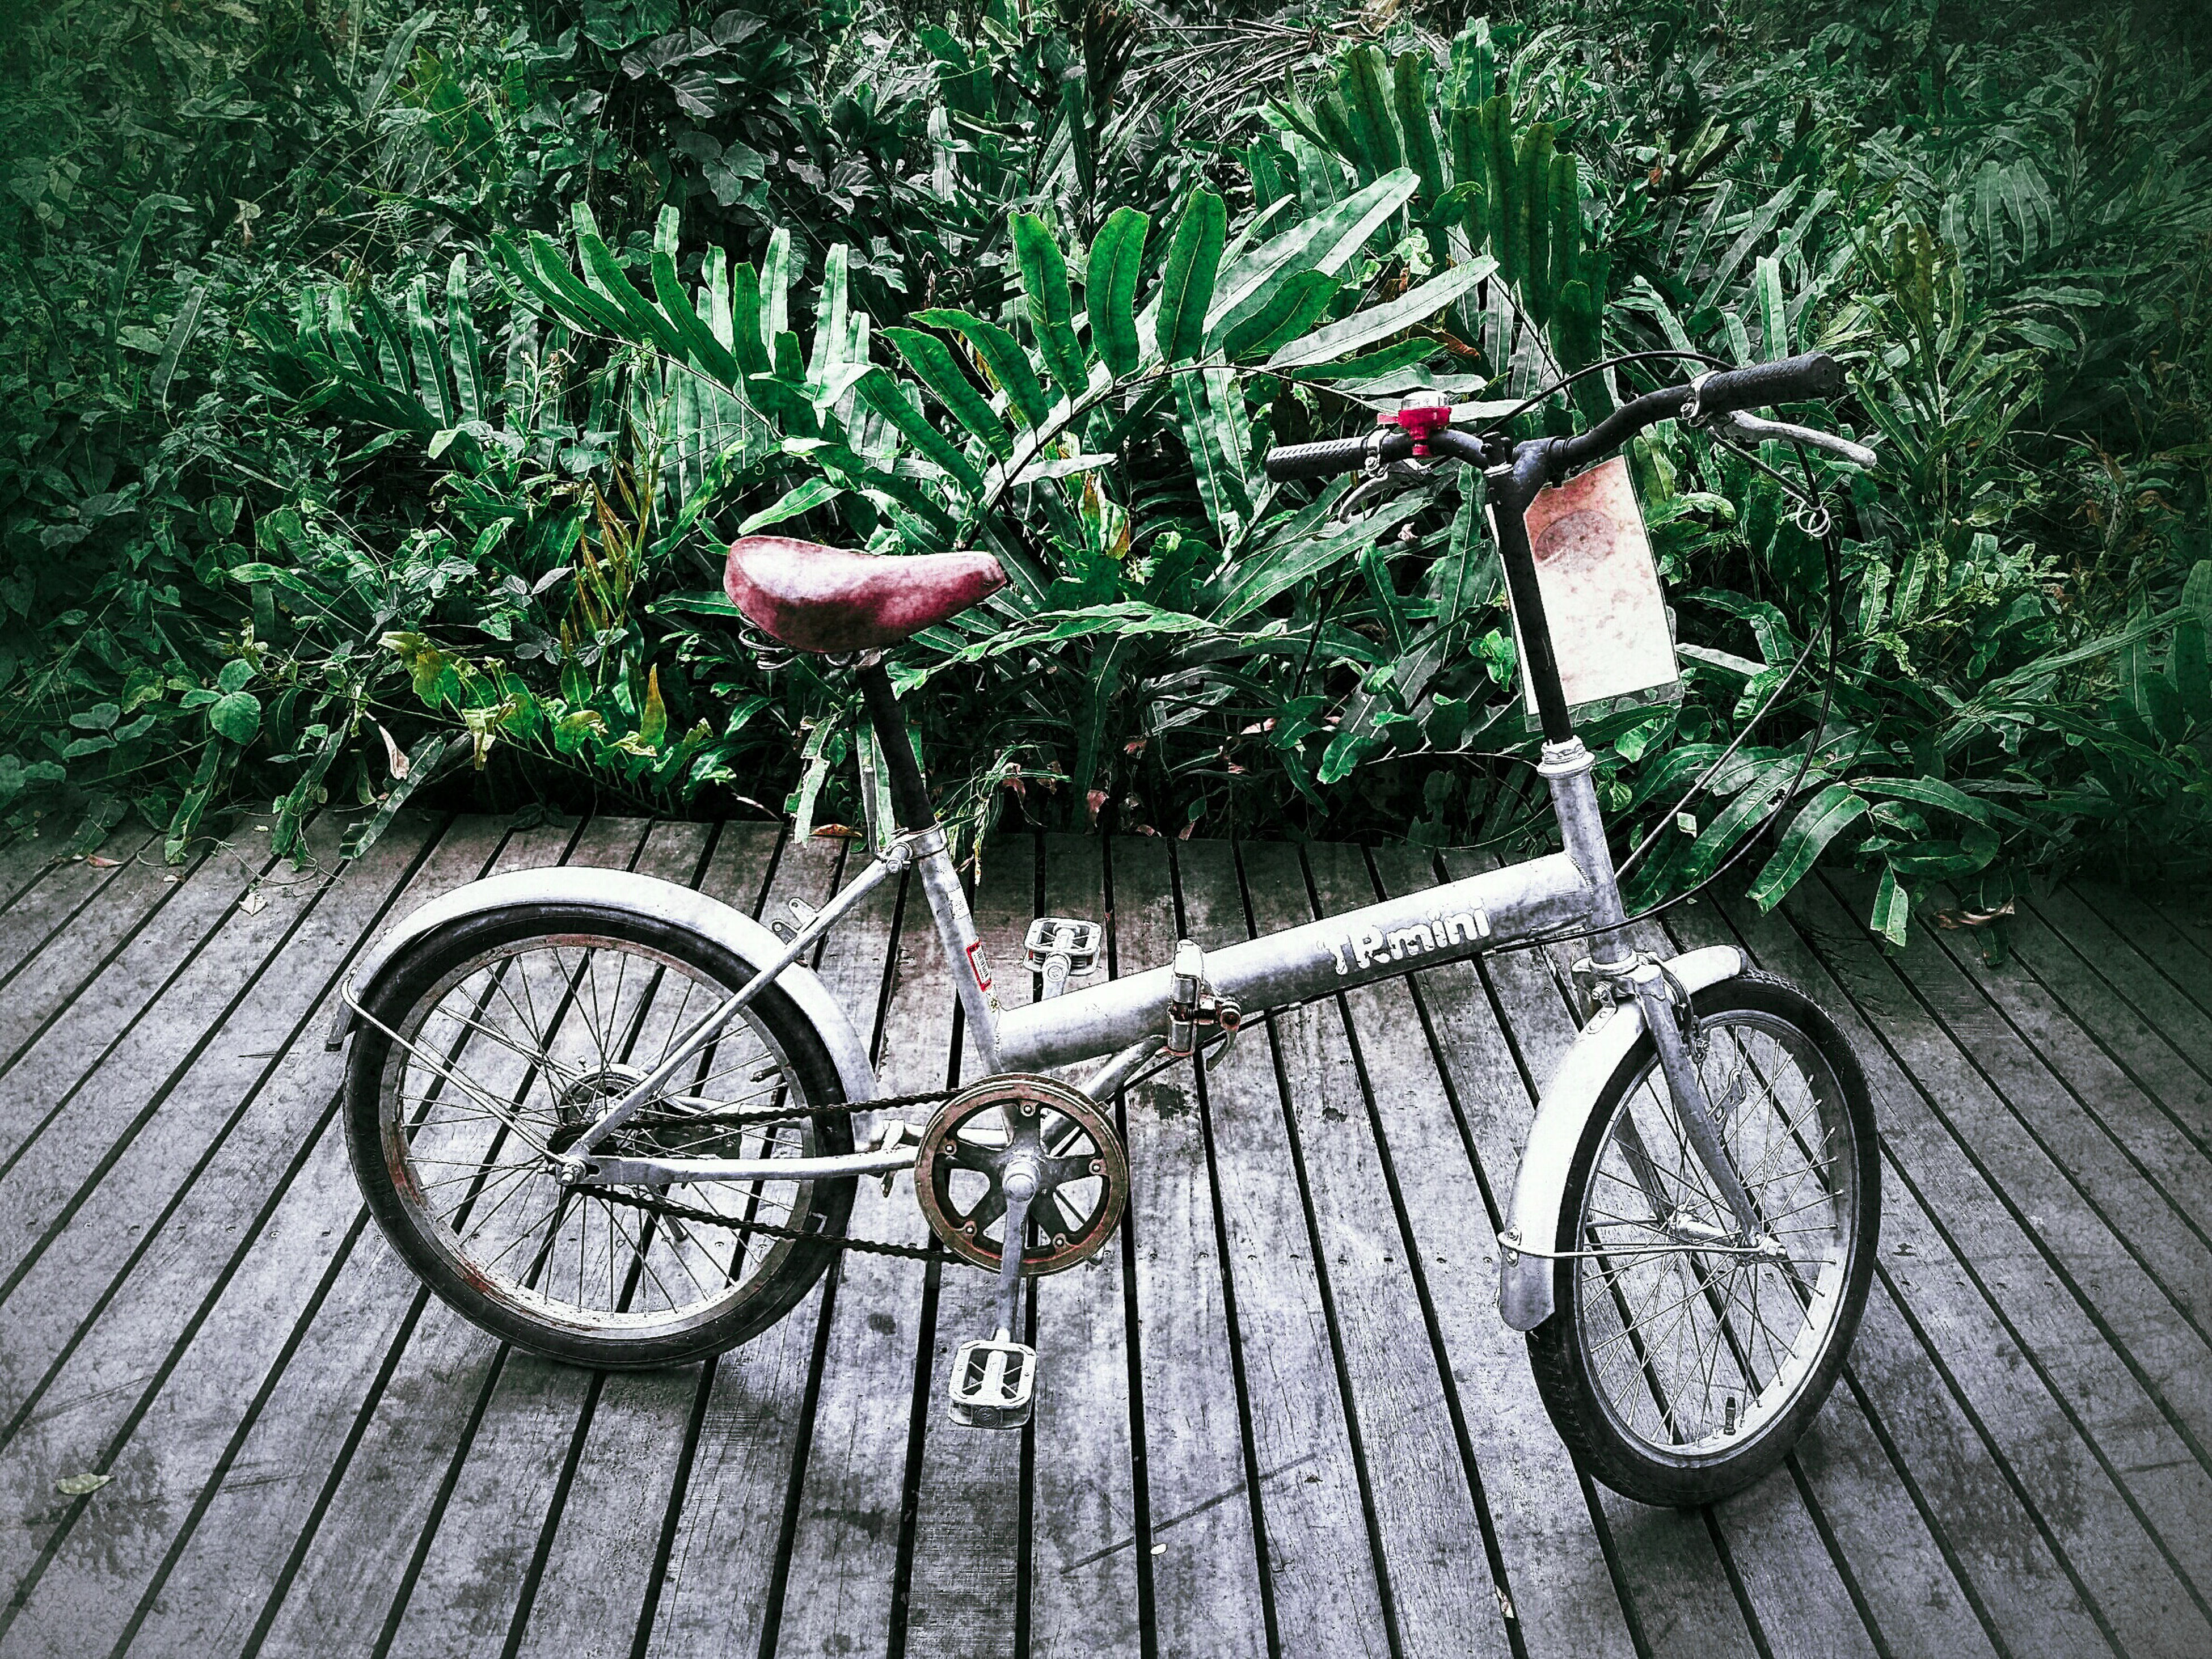 bicycle, transportation, mode of transport, stationary, land vehicle, parking, parked, tree, plant, wheel, growth, no people, outdoors, day, nature, absence, wood - material, railing, flower, cycle